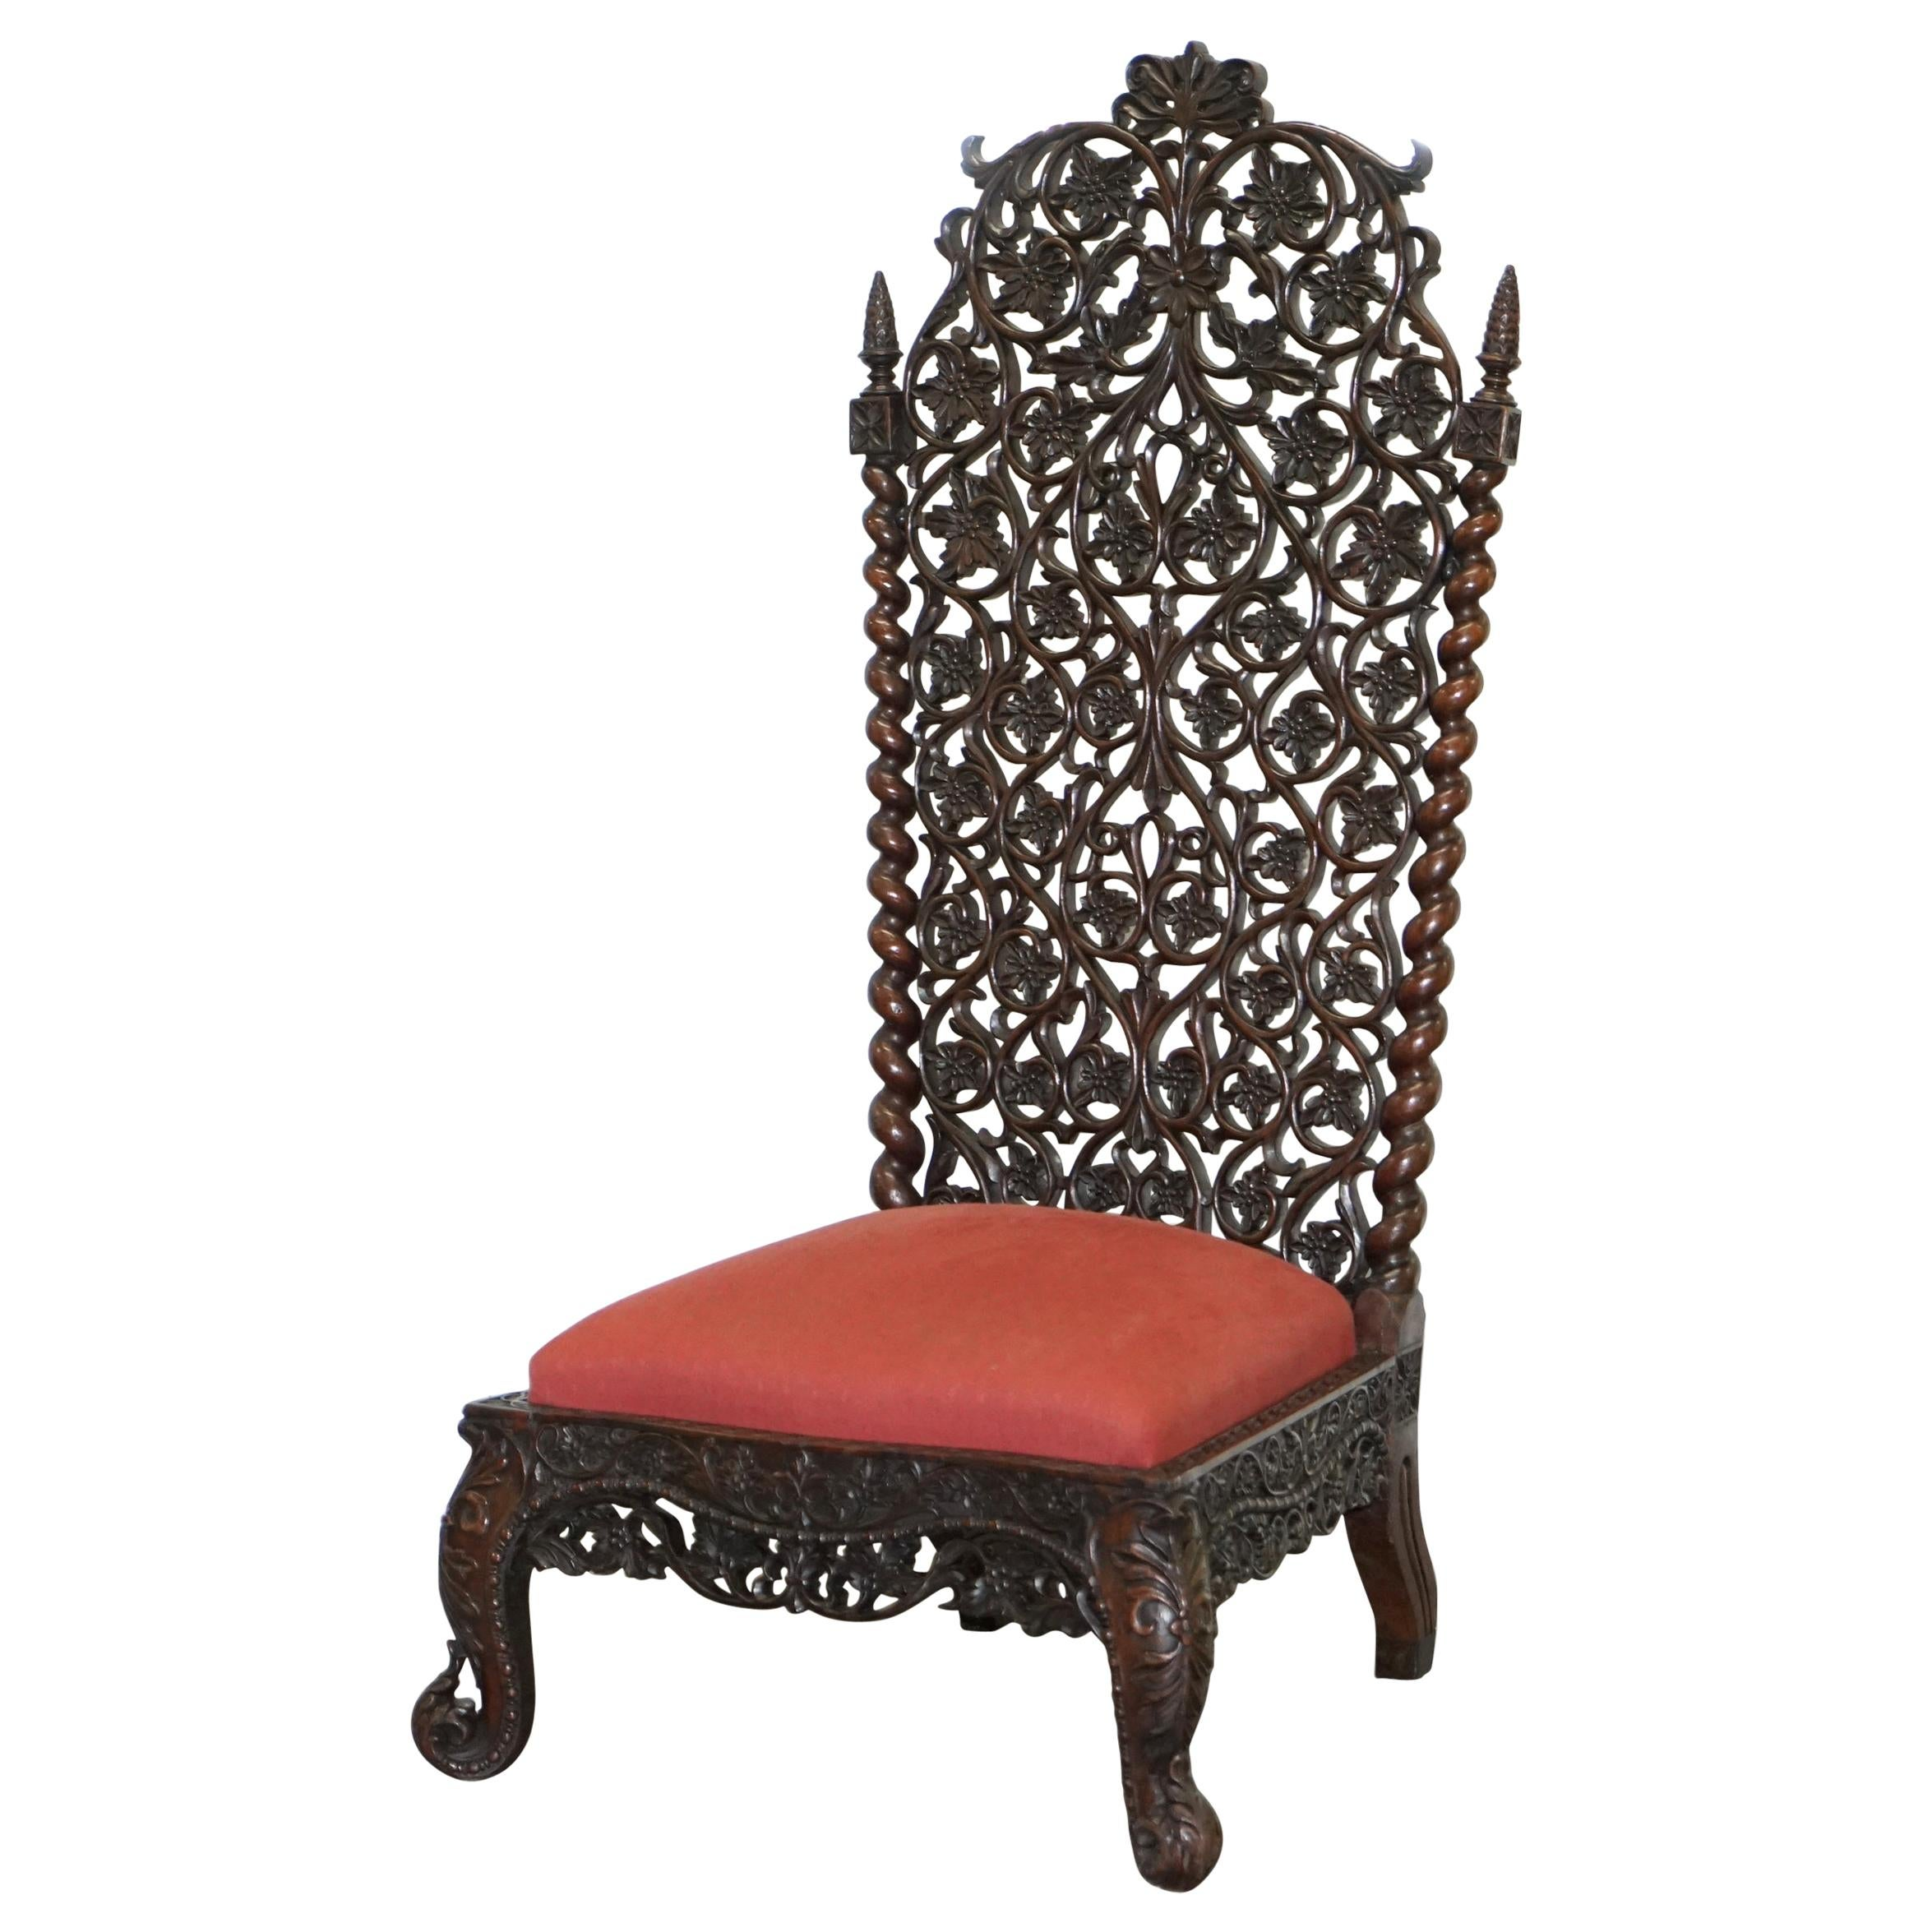 Rare circa 1880 Burmese Solid Rosewood Hand Carved Floral Chair High Back Ornate